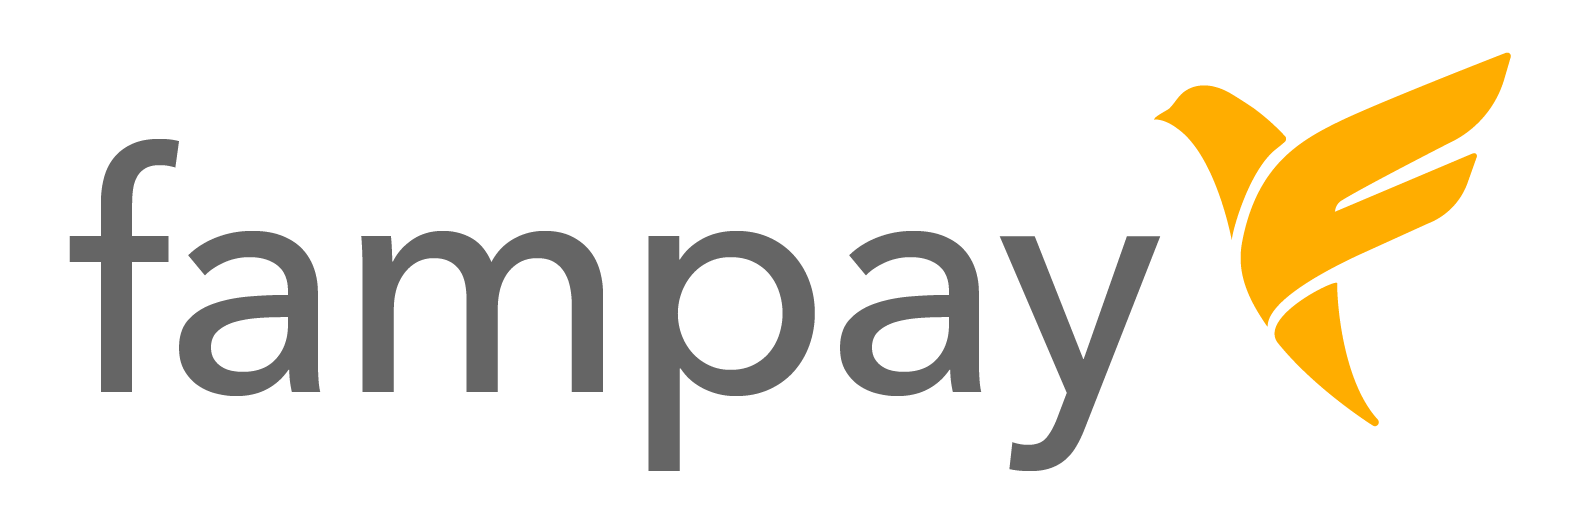 The 21-year old founders of FamPay raises $4.7M from YC, Venture Highway  and Sequoia - Motiverge